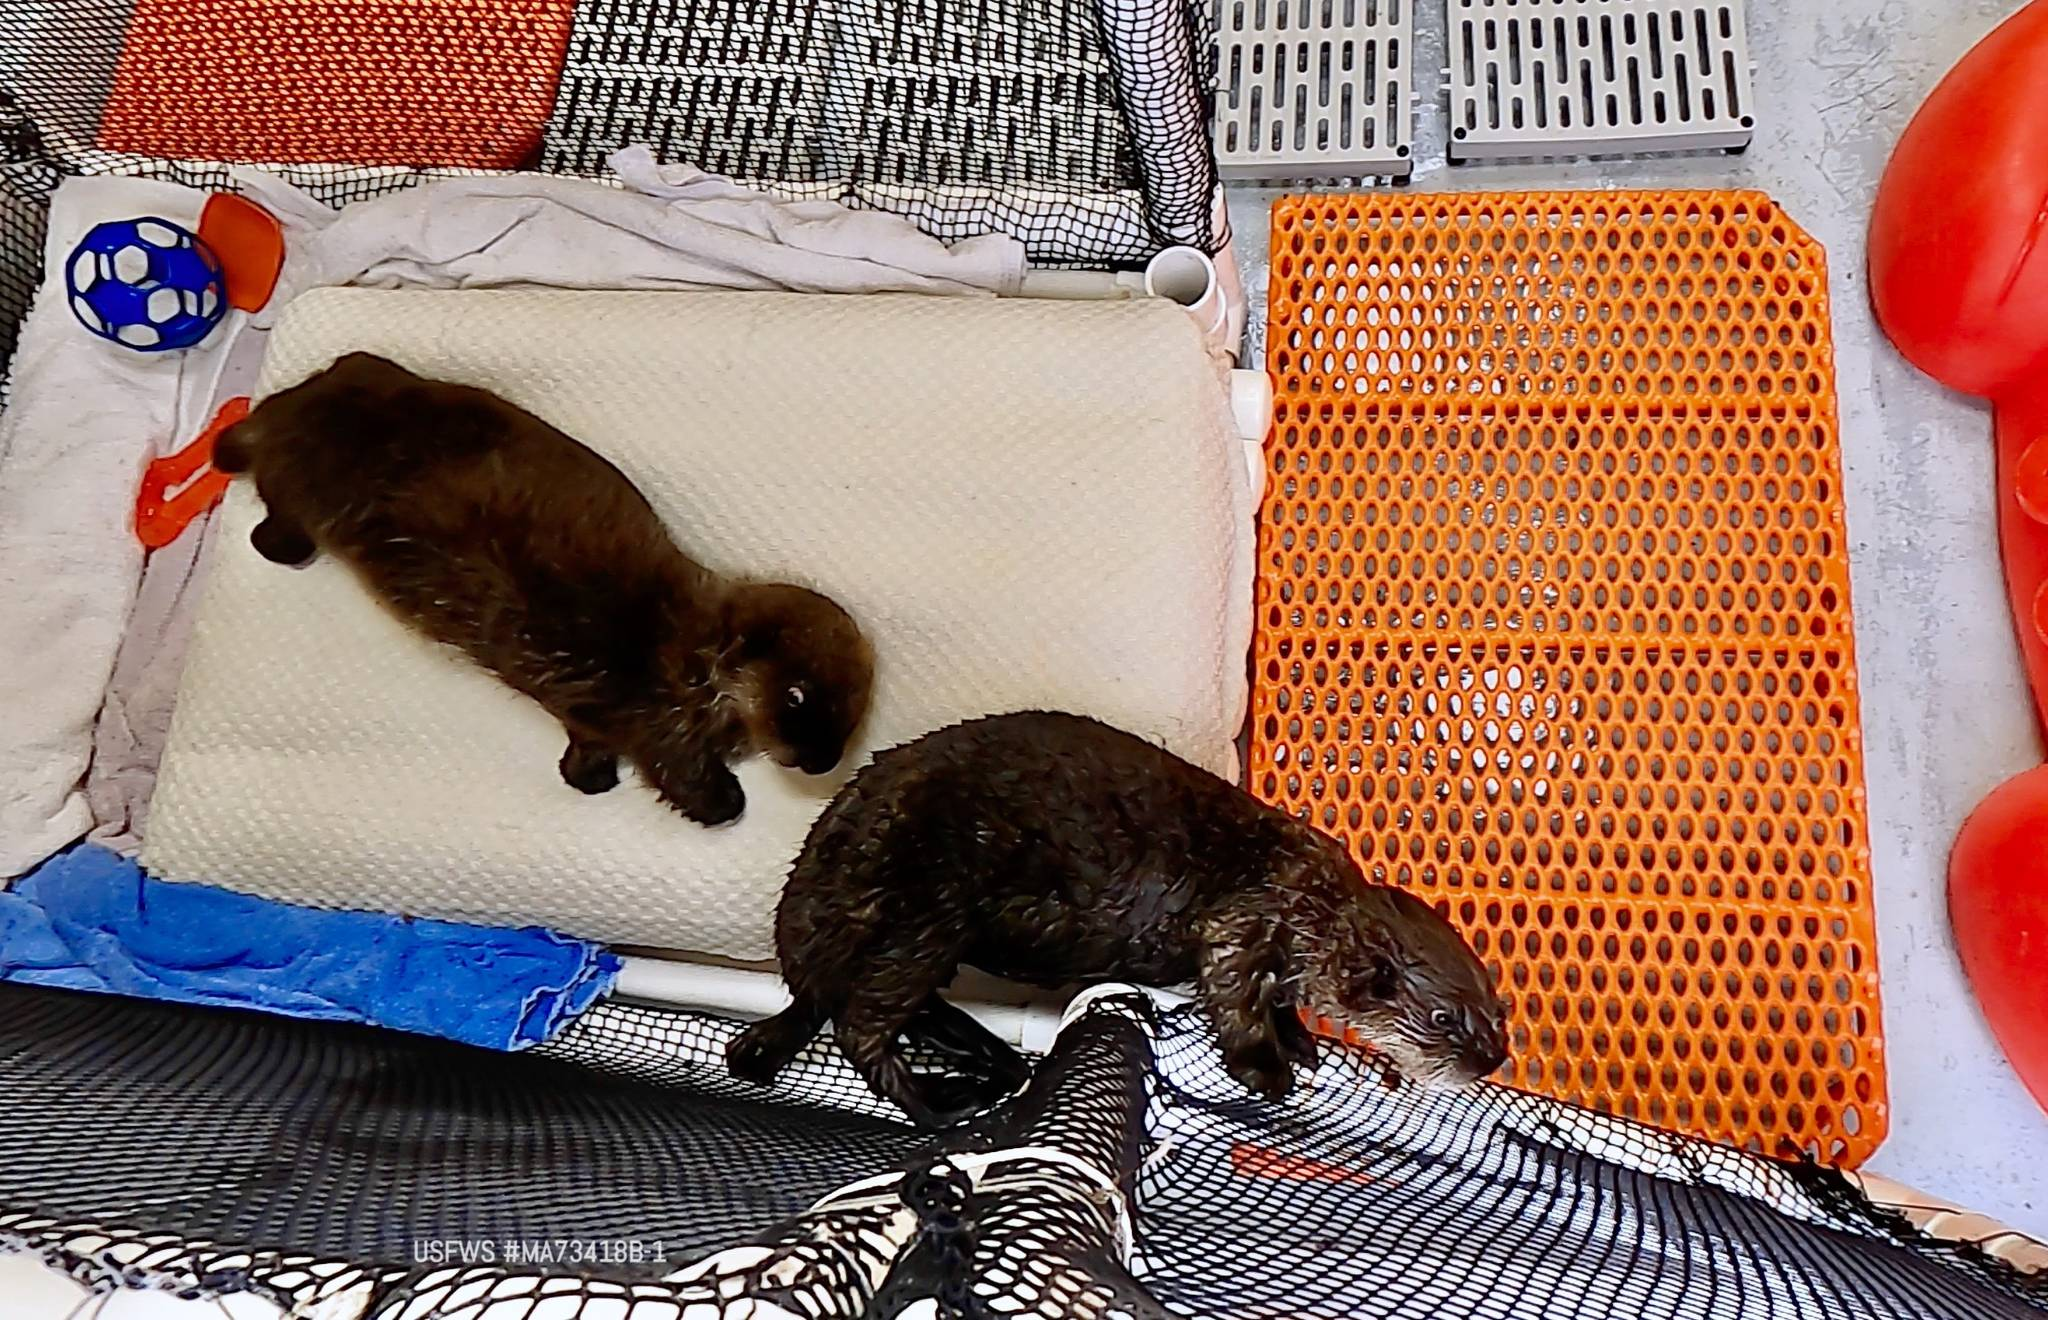 Sea otter pups Juniper (left) and Pushki meet each other for the first time at the Alaska SeaLife Center in Seward, Alaska. (Photo courtesy Alaska SeaLife Center)